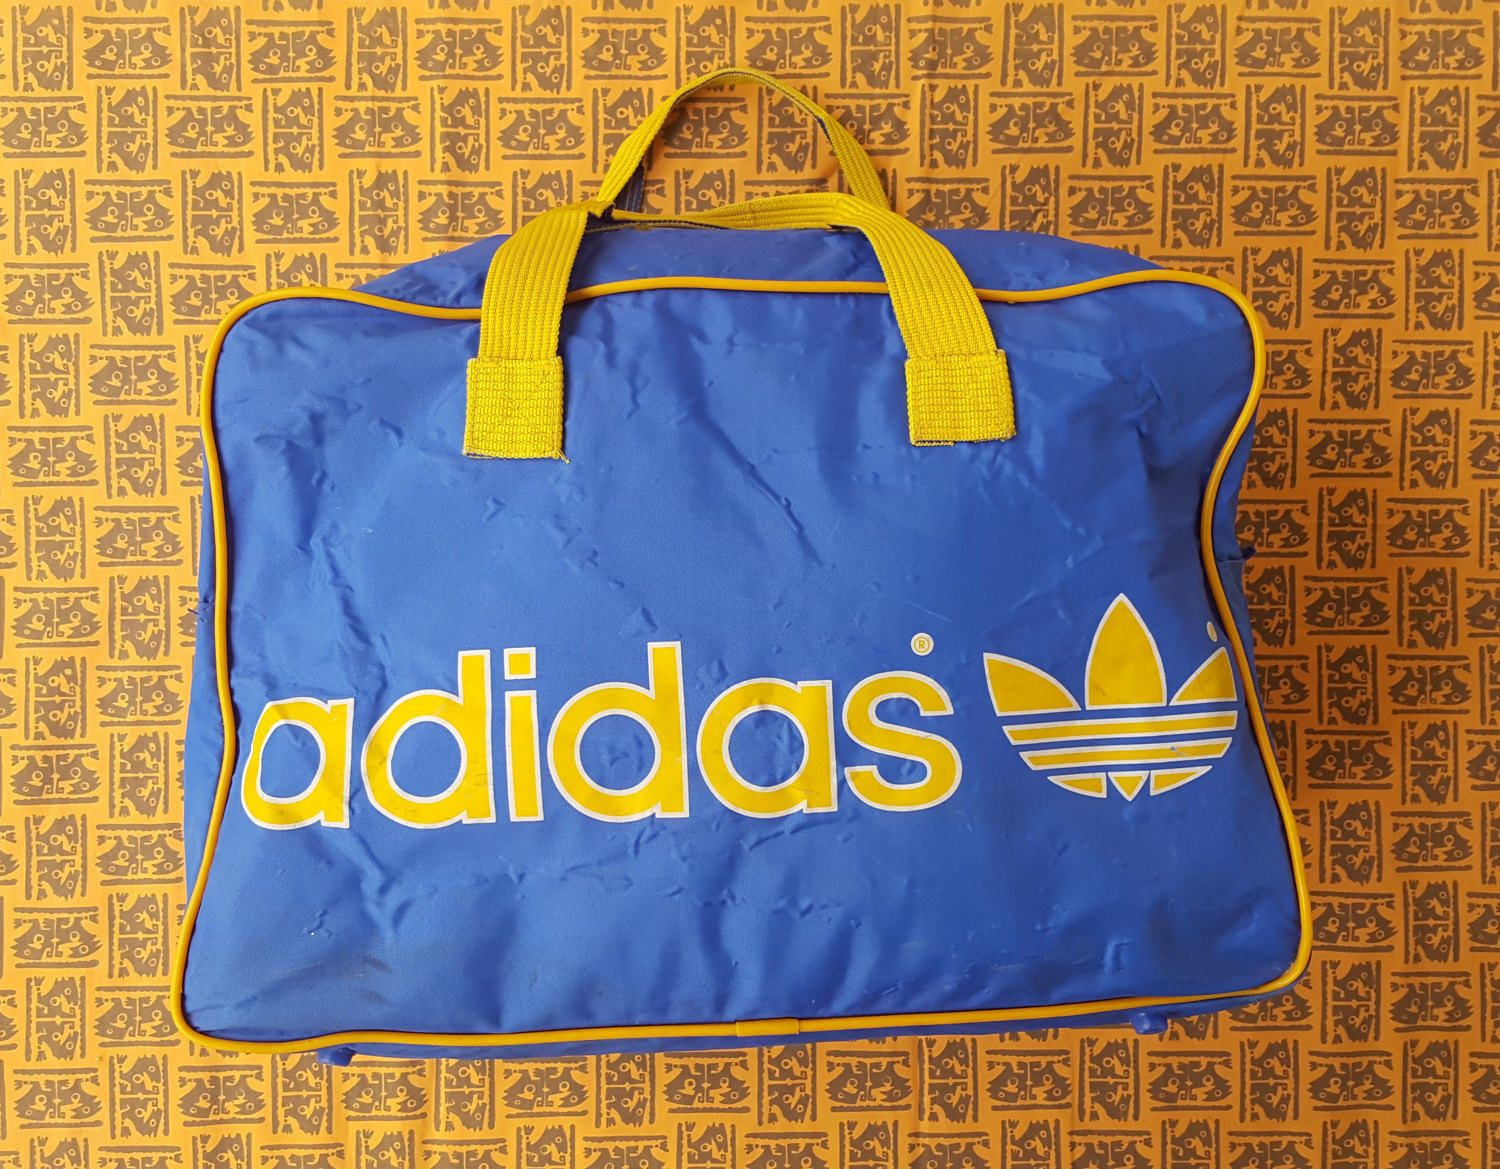 9814ba85e1 80's Adidas Trefoil Blue and Yellow Duffel Bag / Rare / Unisex / West  Germany / Vintage / Gym / Sports Memorabilia by NEONPOINT on Etsy